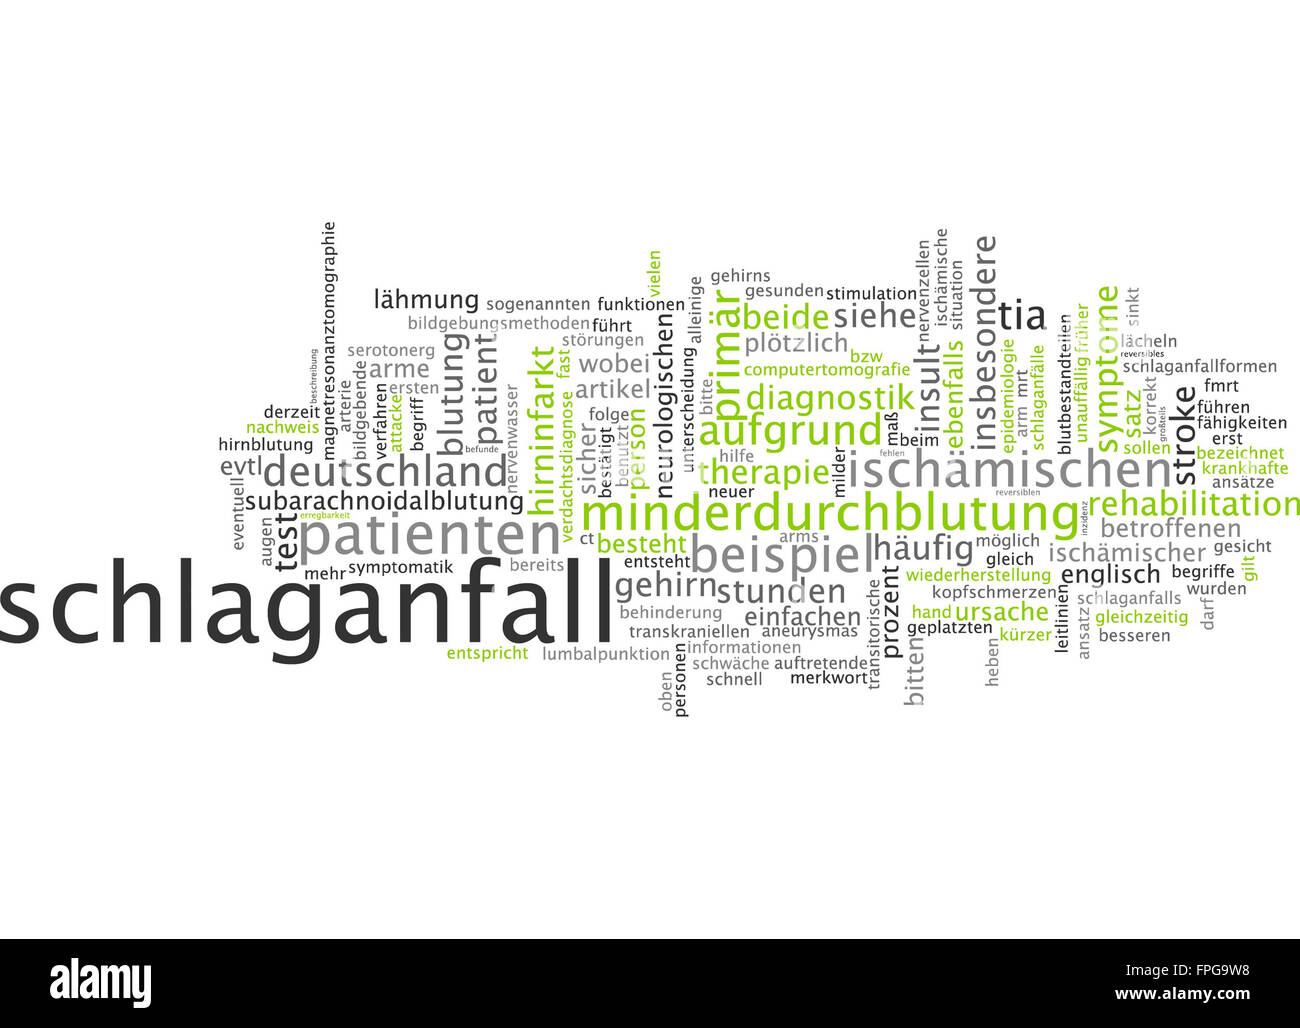 Schlaganfall Stock Photos & Schlaganfall Stock Images - Alamy